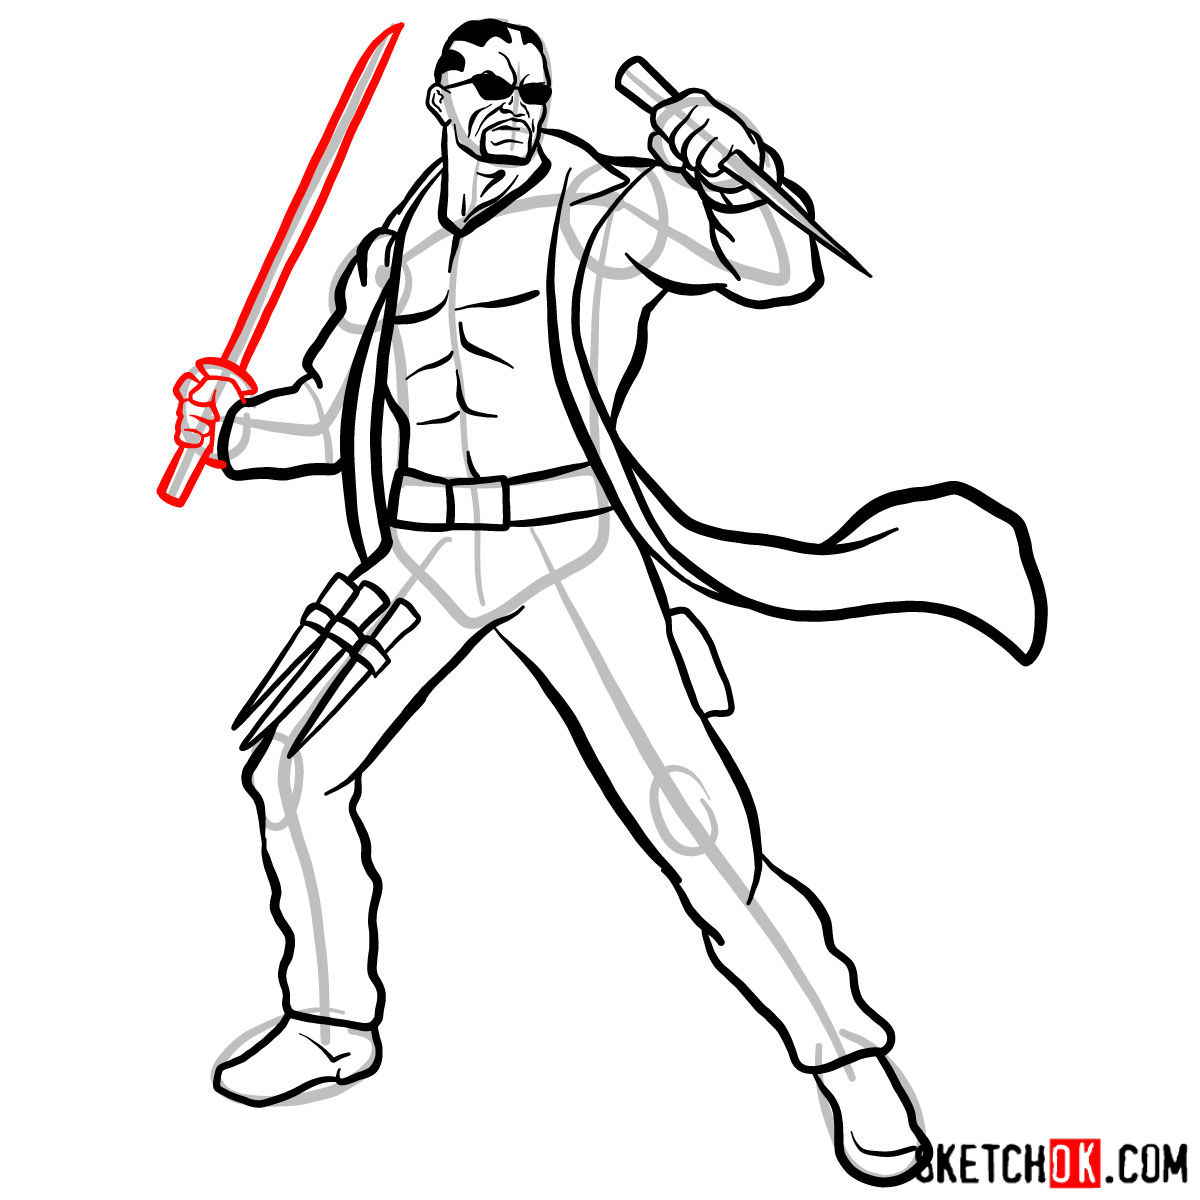 How to draw Blade from Marvel Comics - step 14